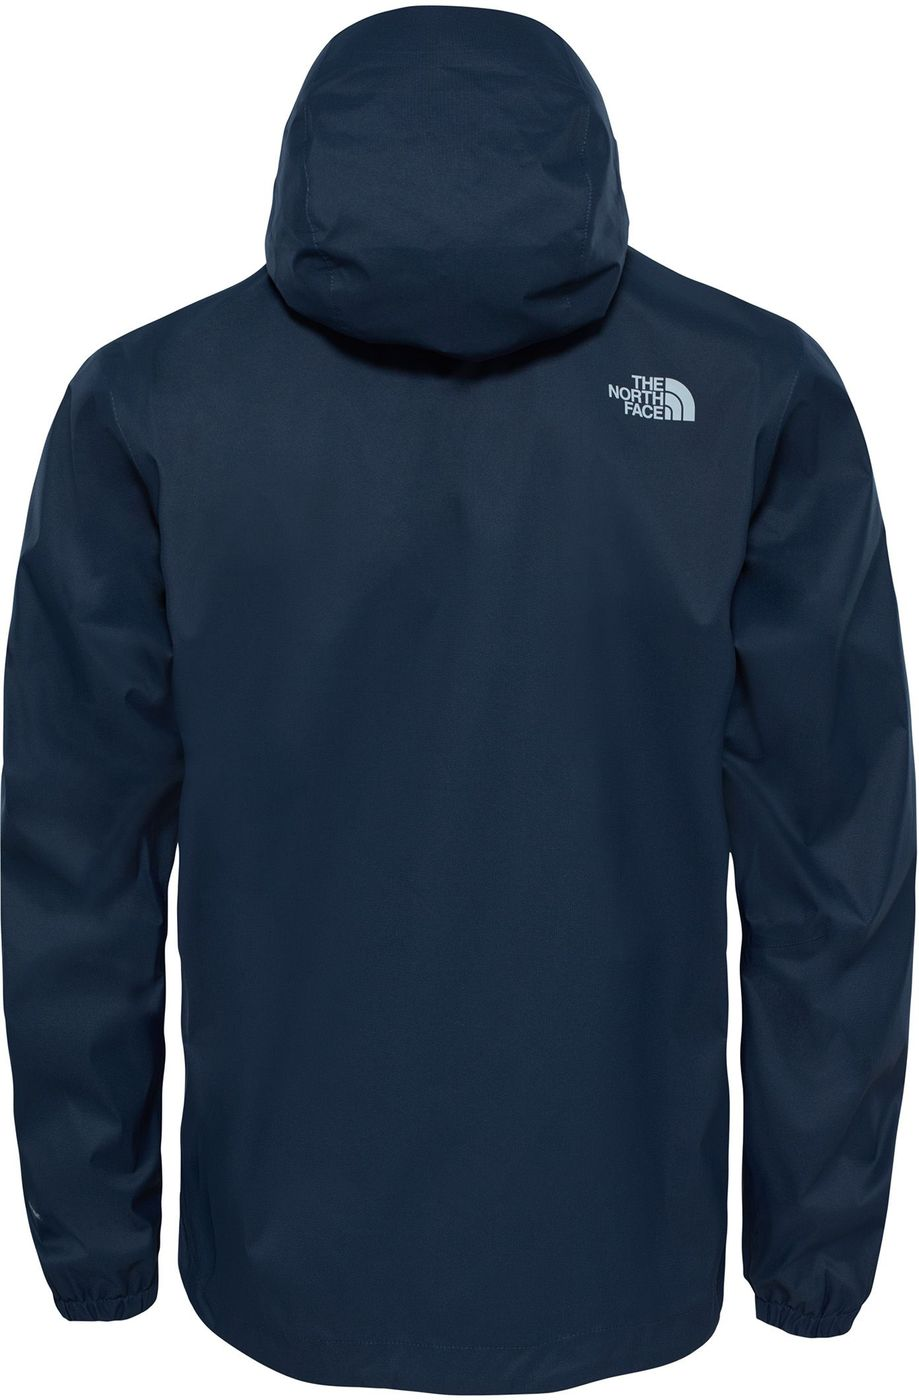 THE-NORTH-FACE-TNF-Quest-Waterproof-Outdoor-Hiking-Trekking-Jacket-Hooded-Mens thumbnail 11